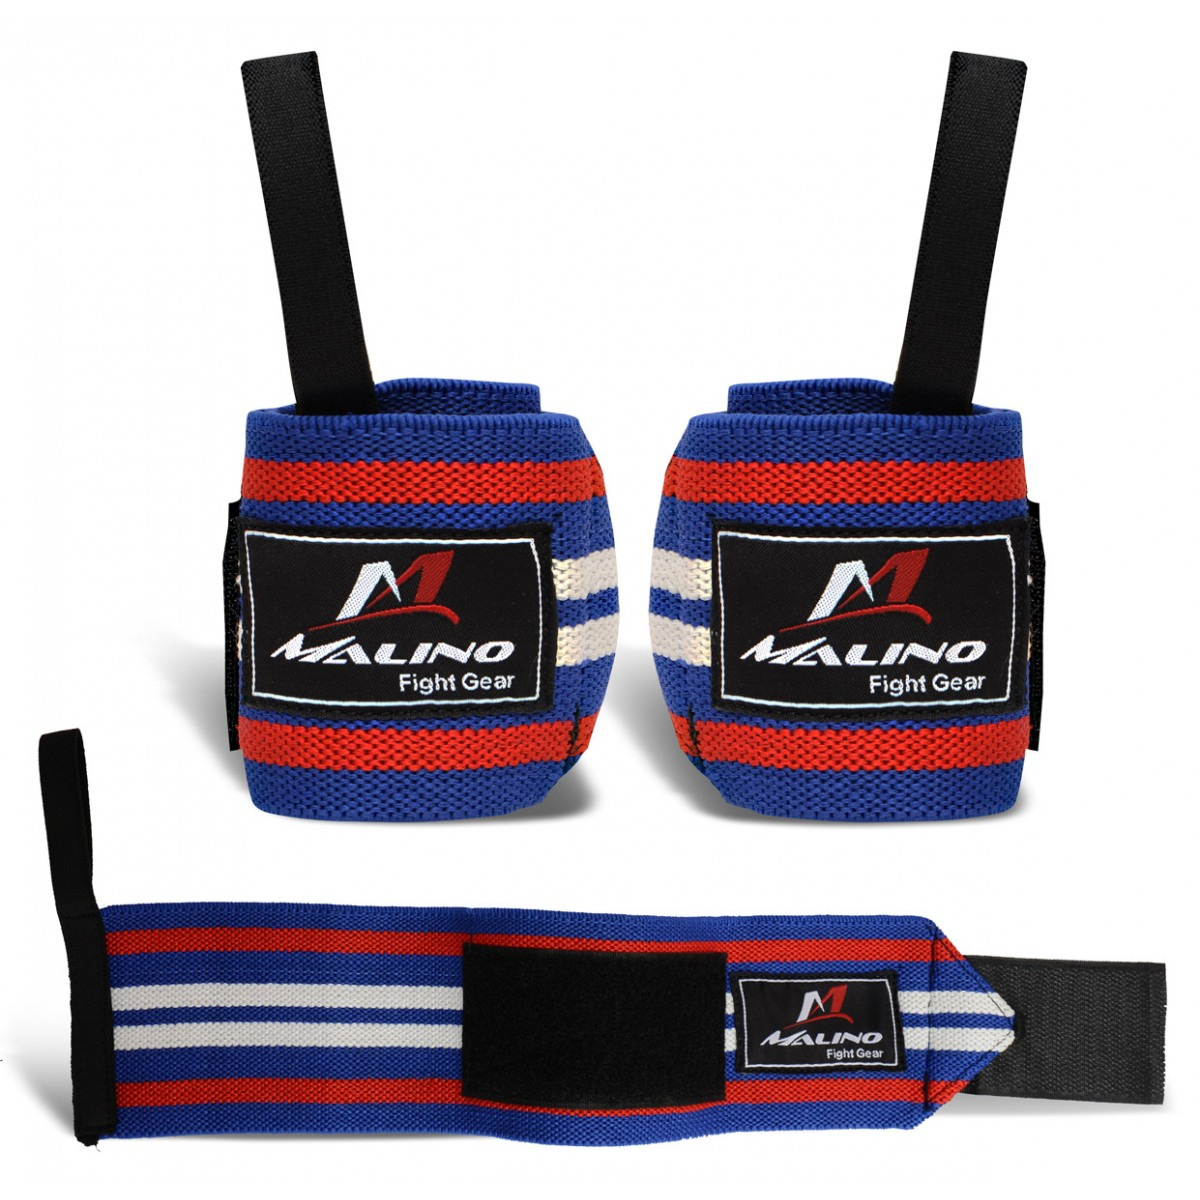 Professional Hand Wraps Boxing Tapes Blue-Red-White